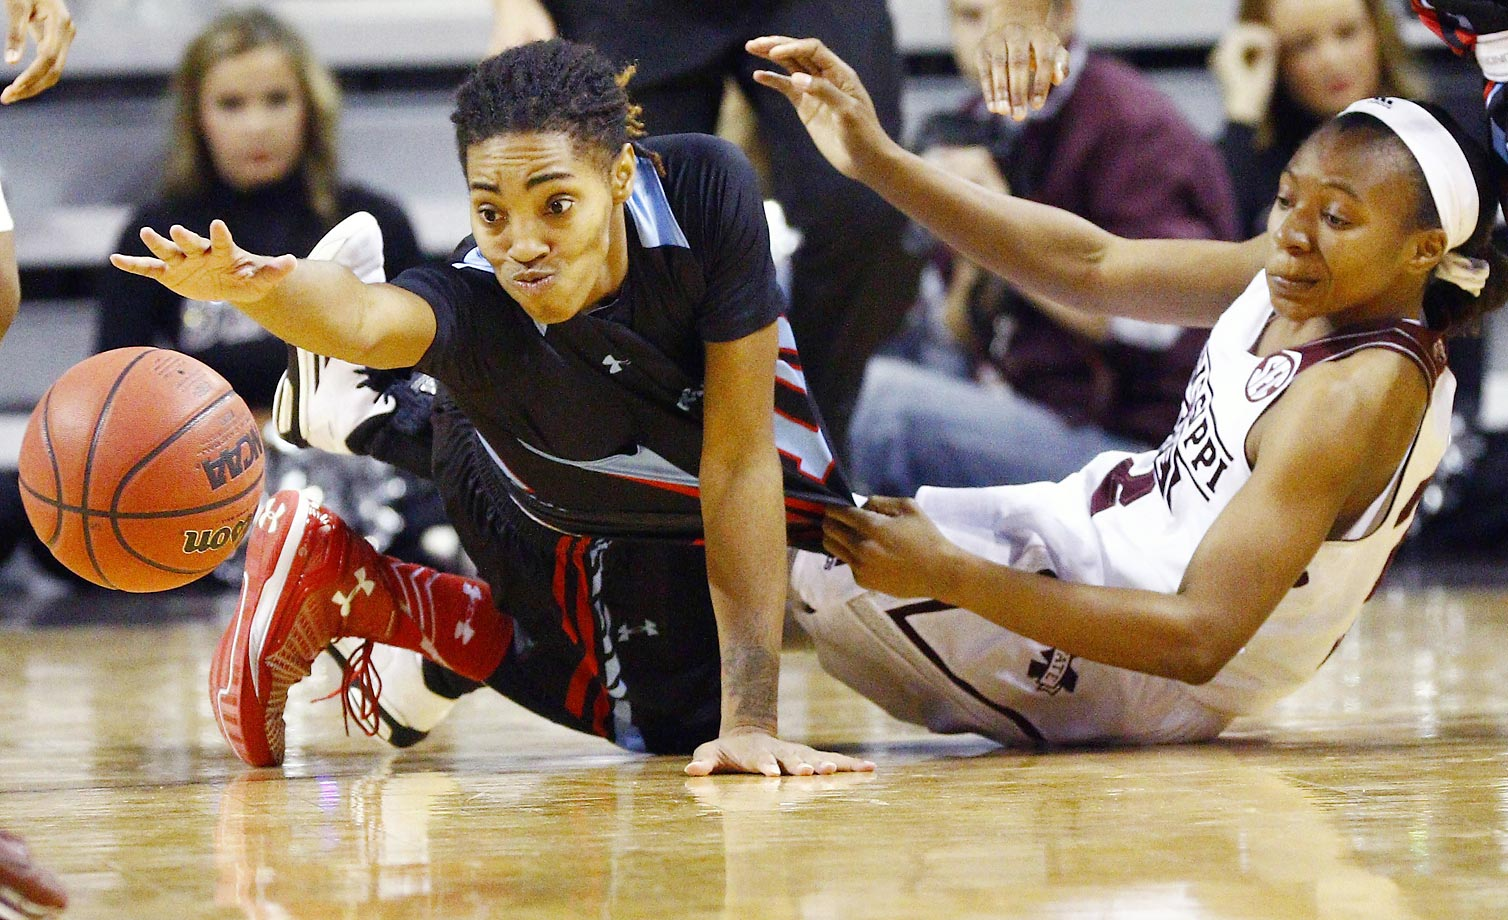 Louisiana Tech guard Chrisstasia Walter reaches for a loose ball after colliding with Mississippi State guard Morgan William.